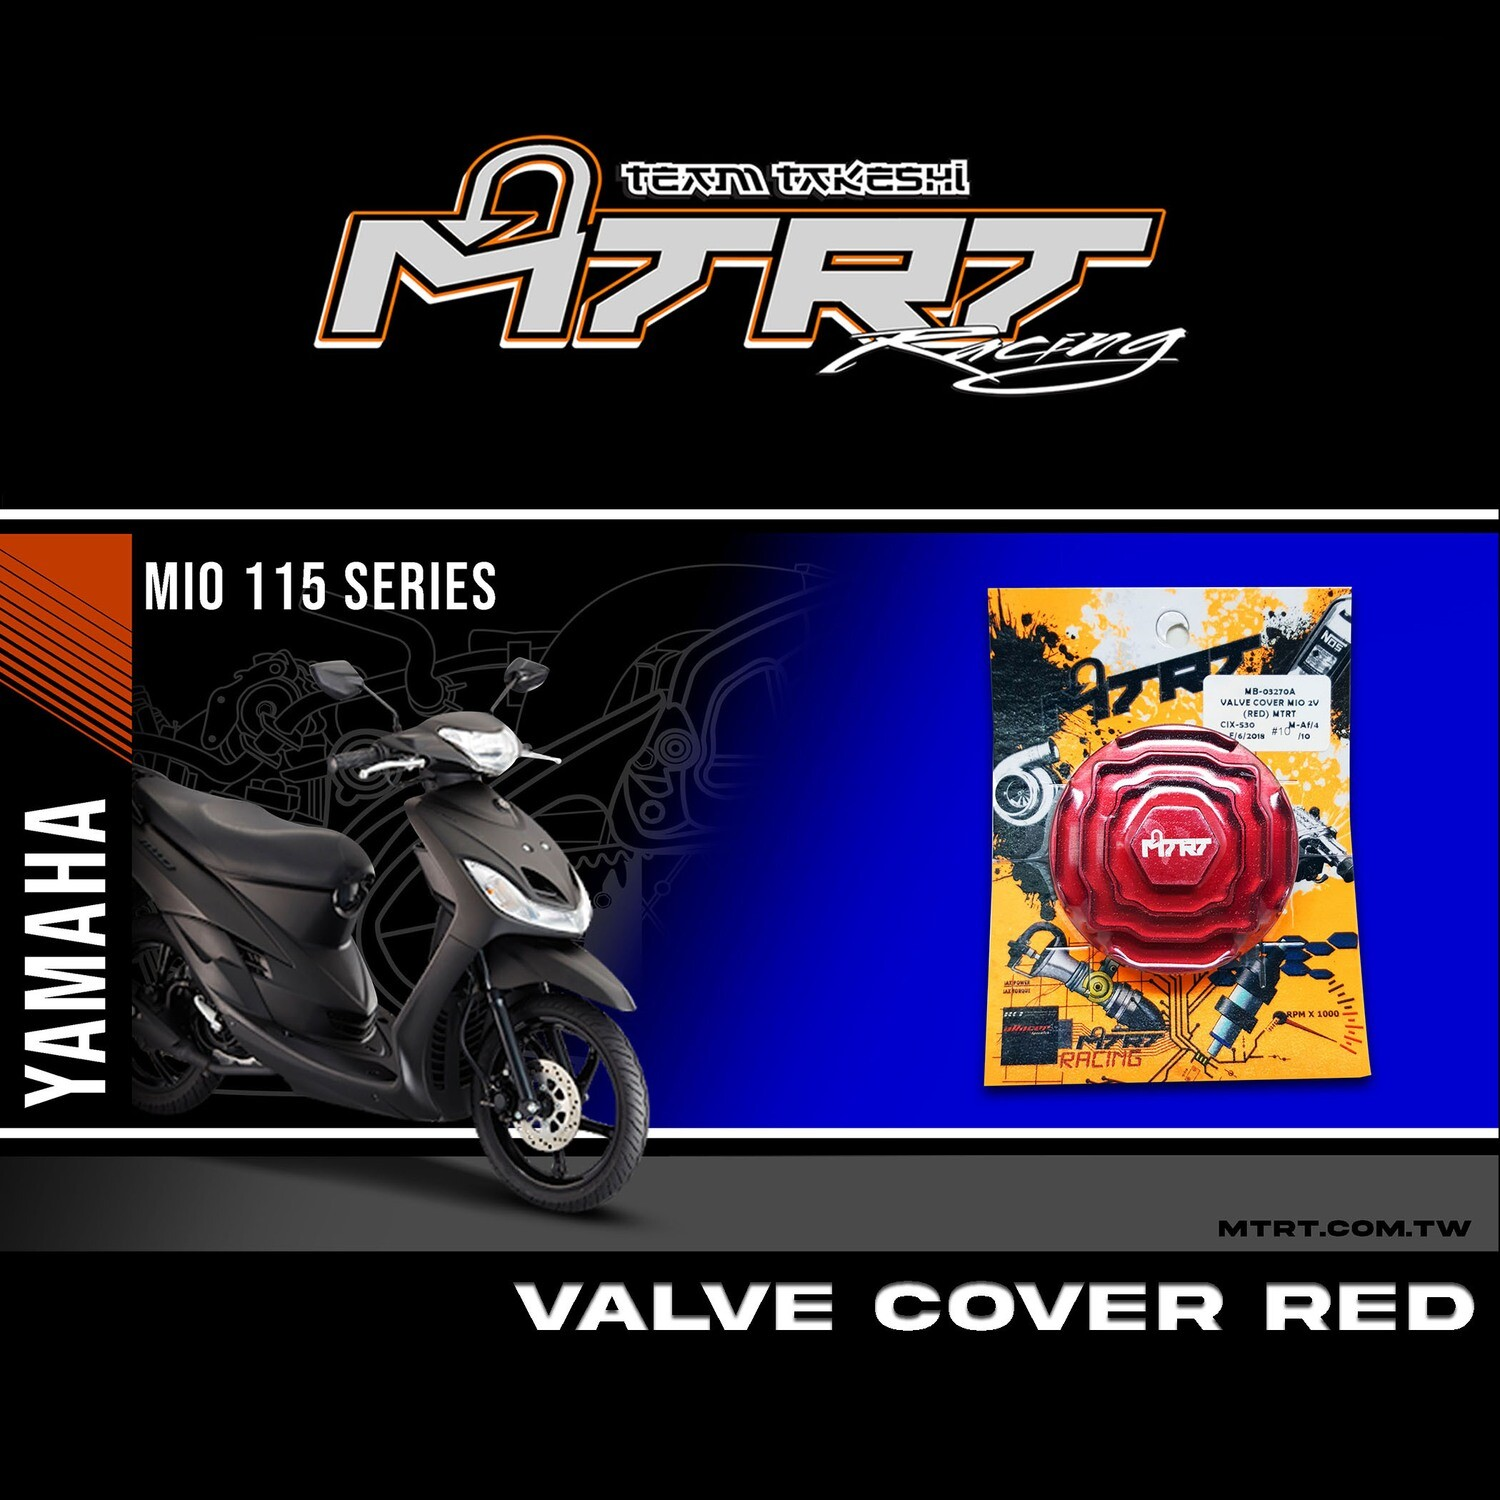 VALVE COVER DOUBLE LAYER RED MIO MTRT